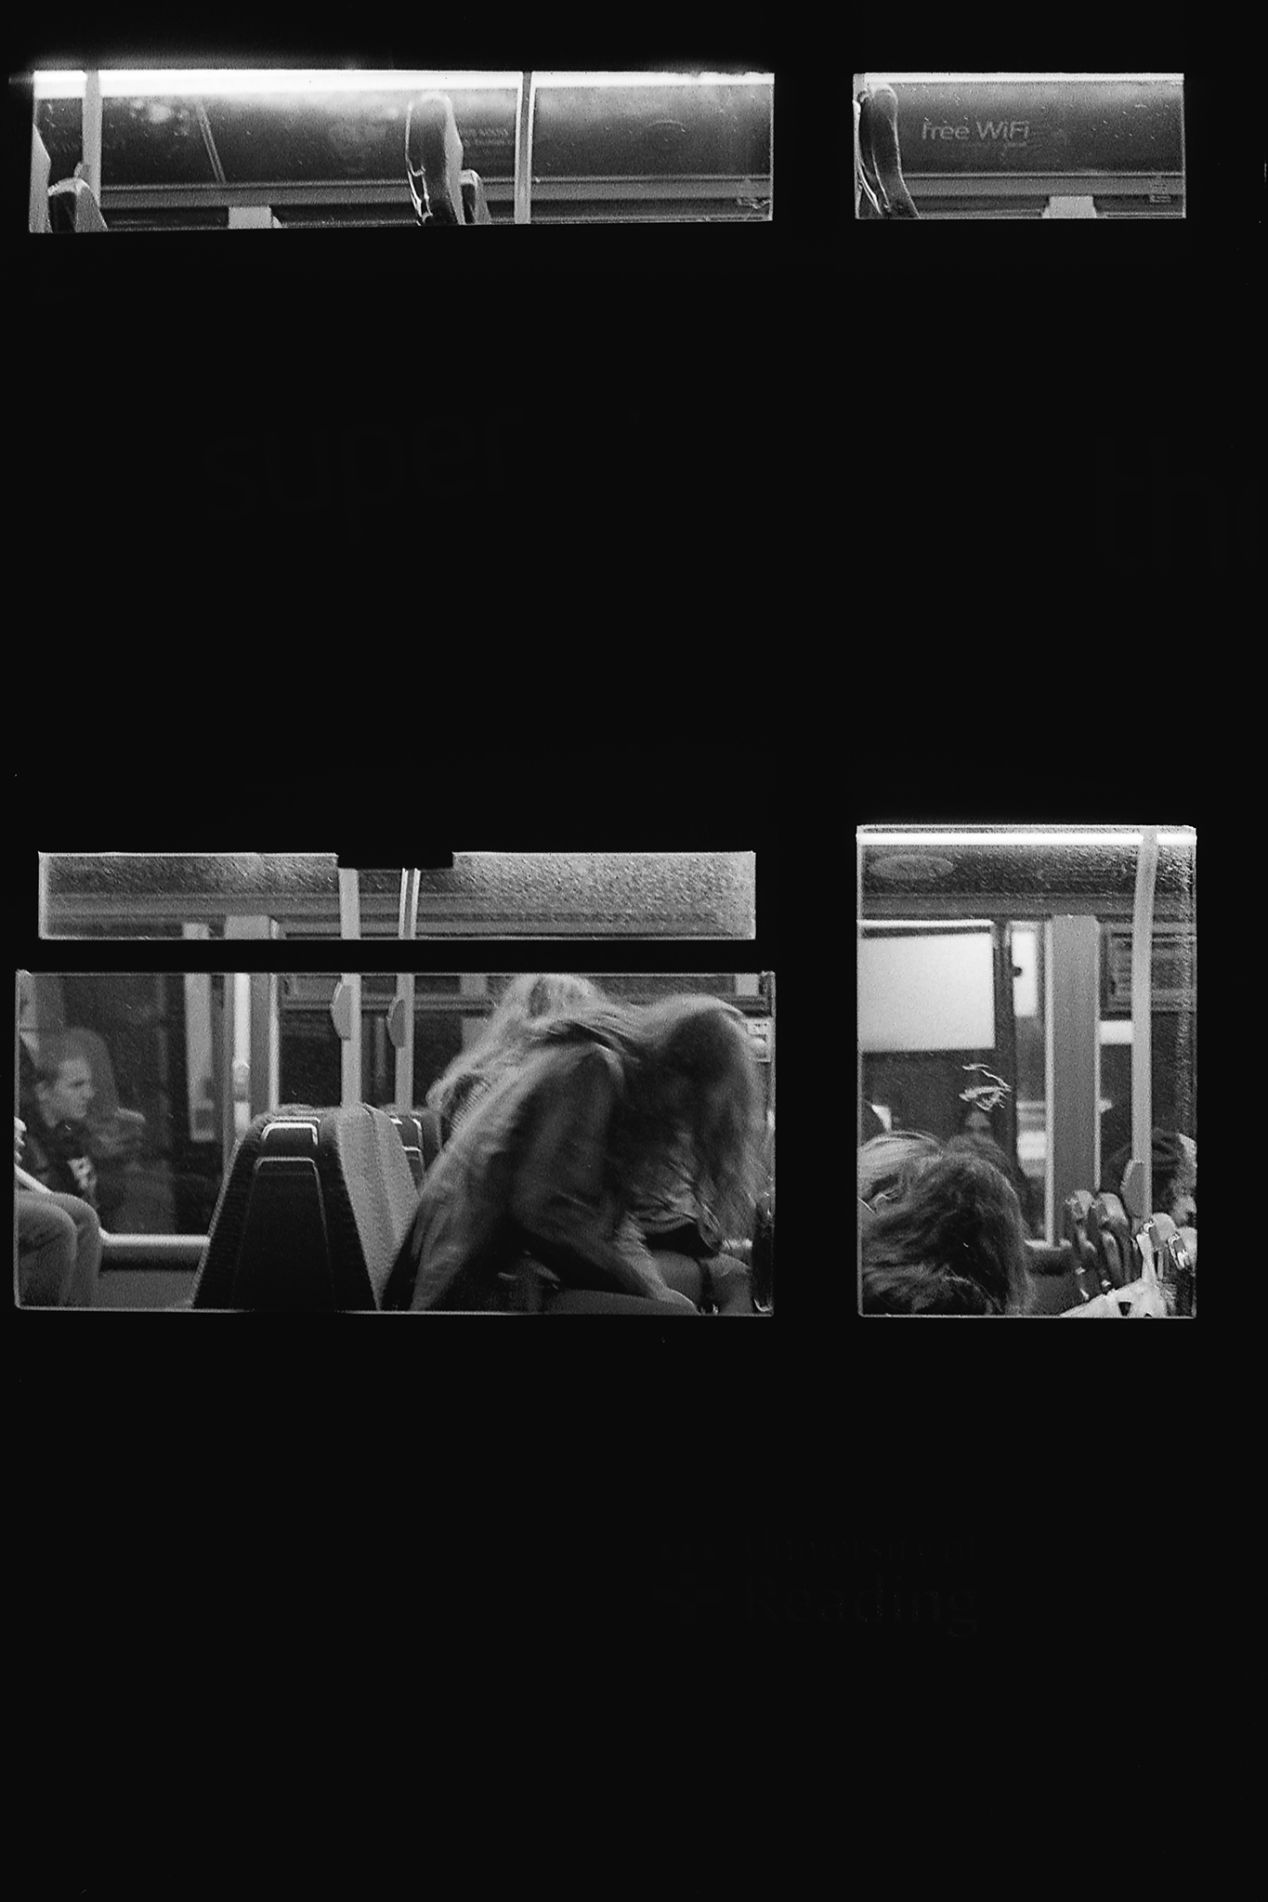 Dirty windows and boring bus rides home. Kodak Tri-X, pushed to 1600.